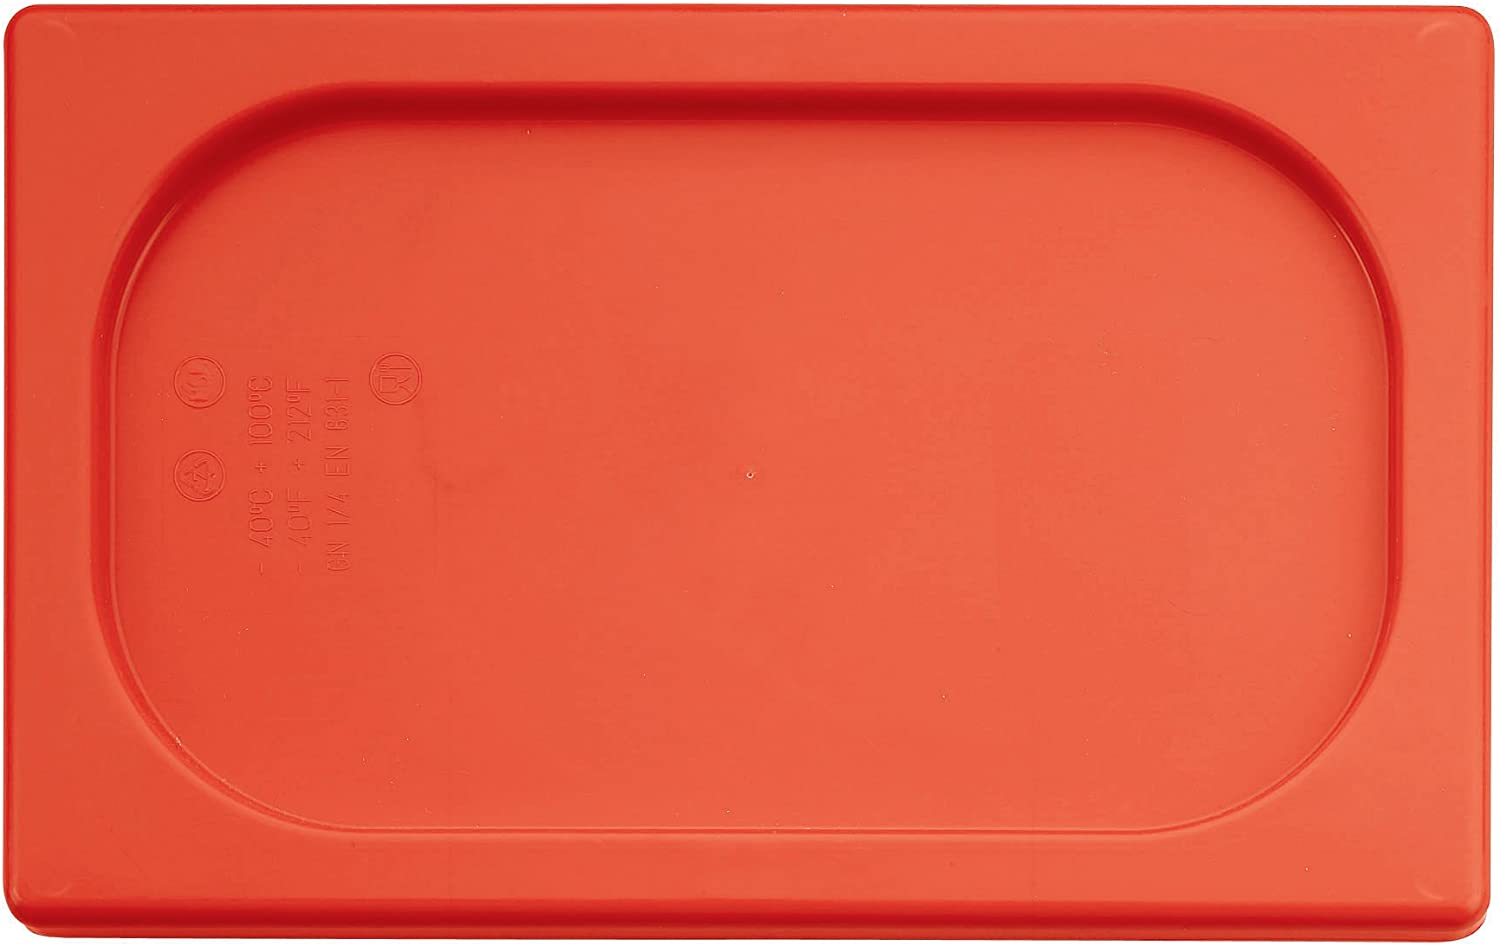 Paderno World Cuisine 7 inches by 4 3/8 inches Red Polypropylene Hotel Food Pan Lid - 1/9